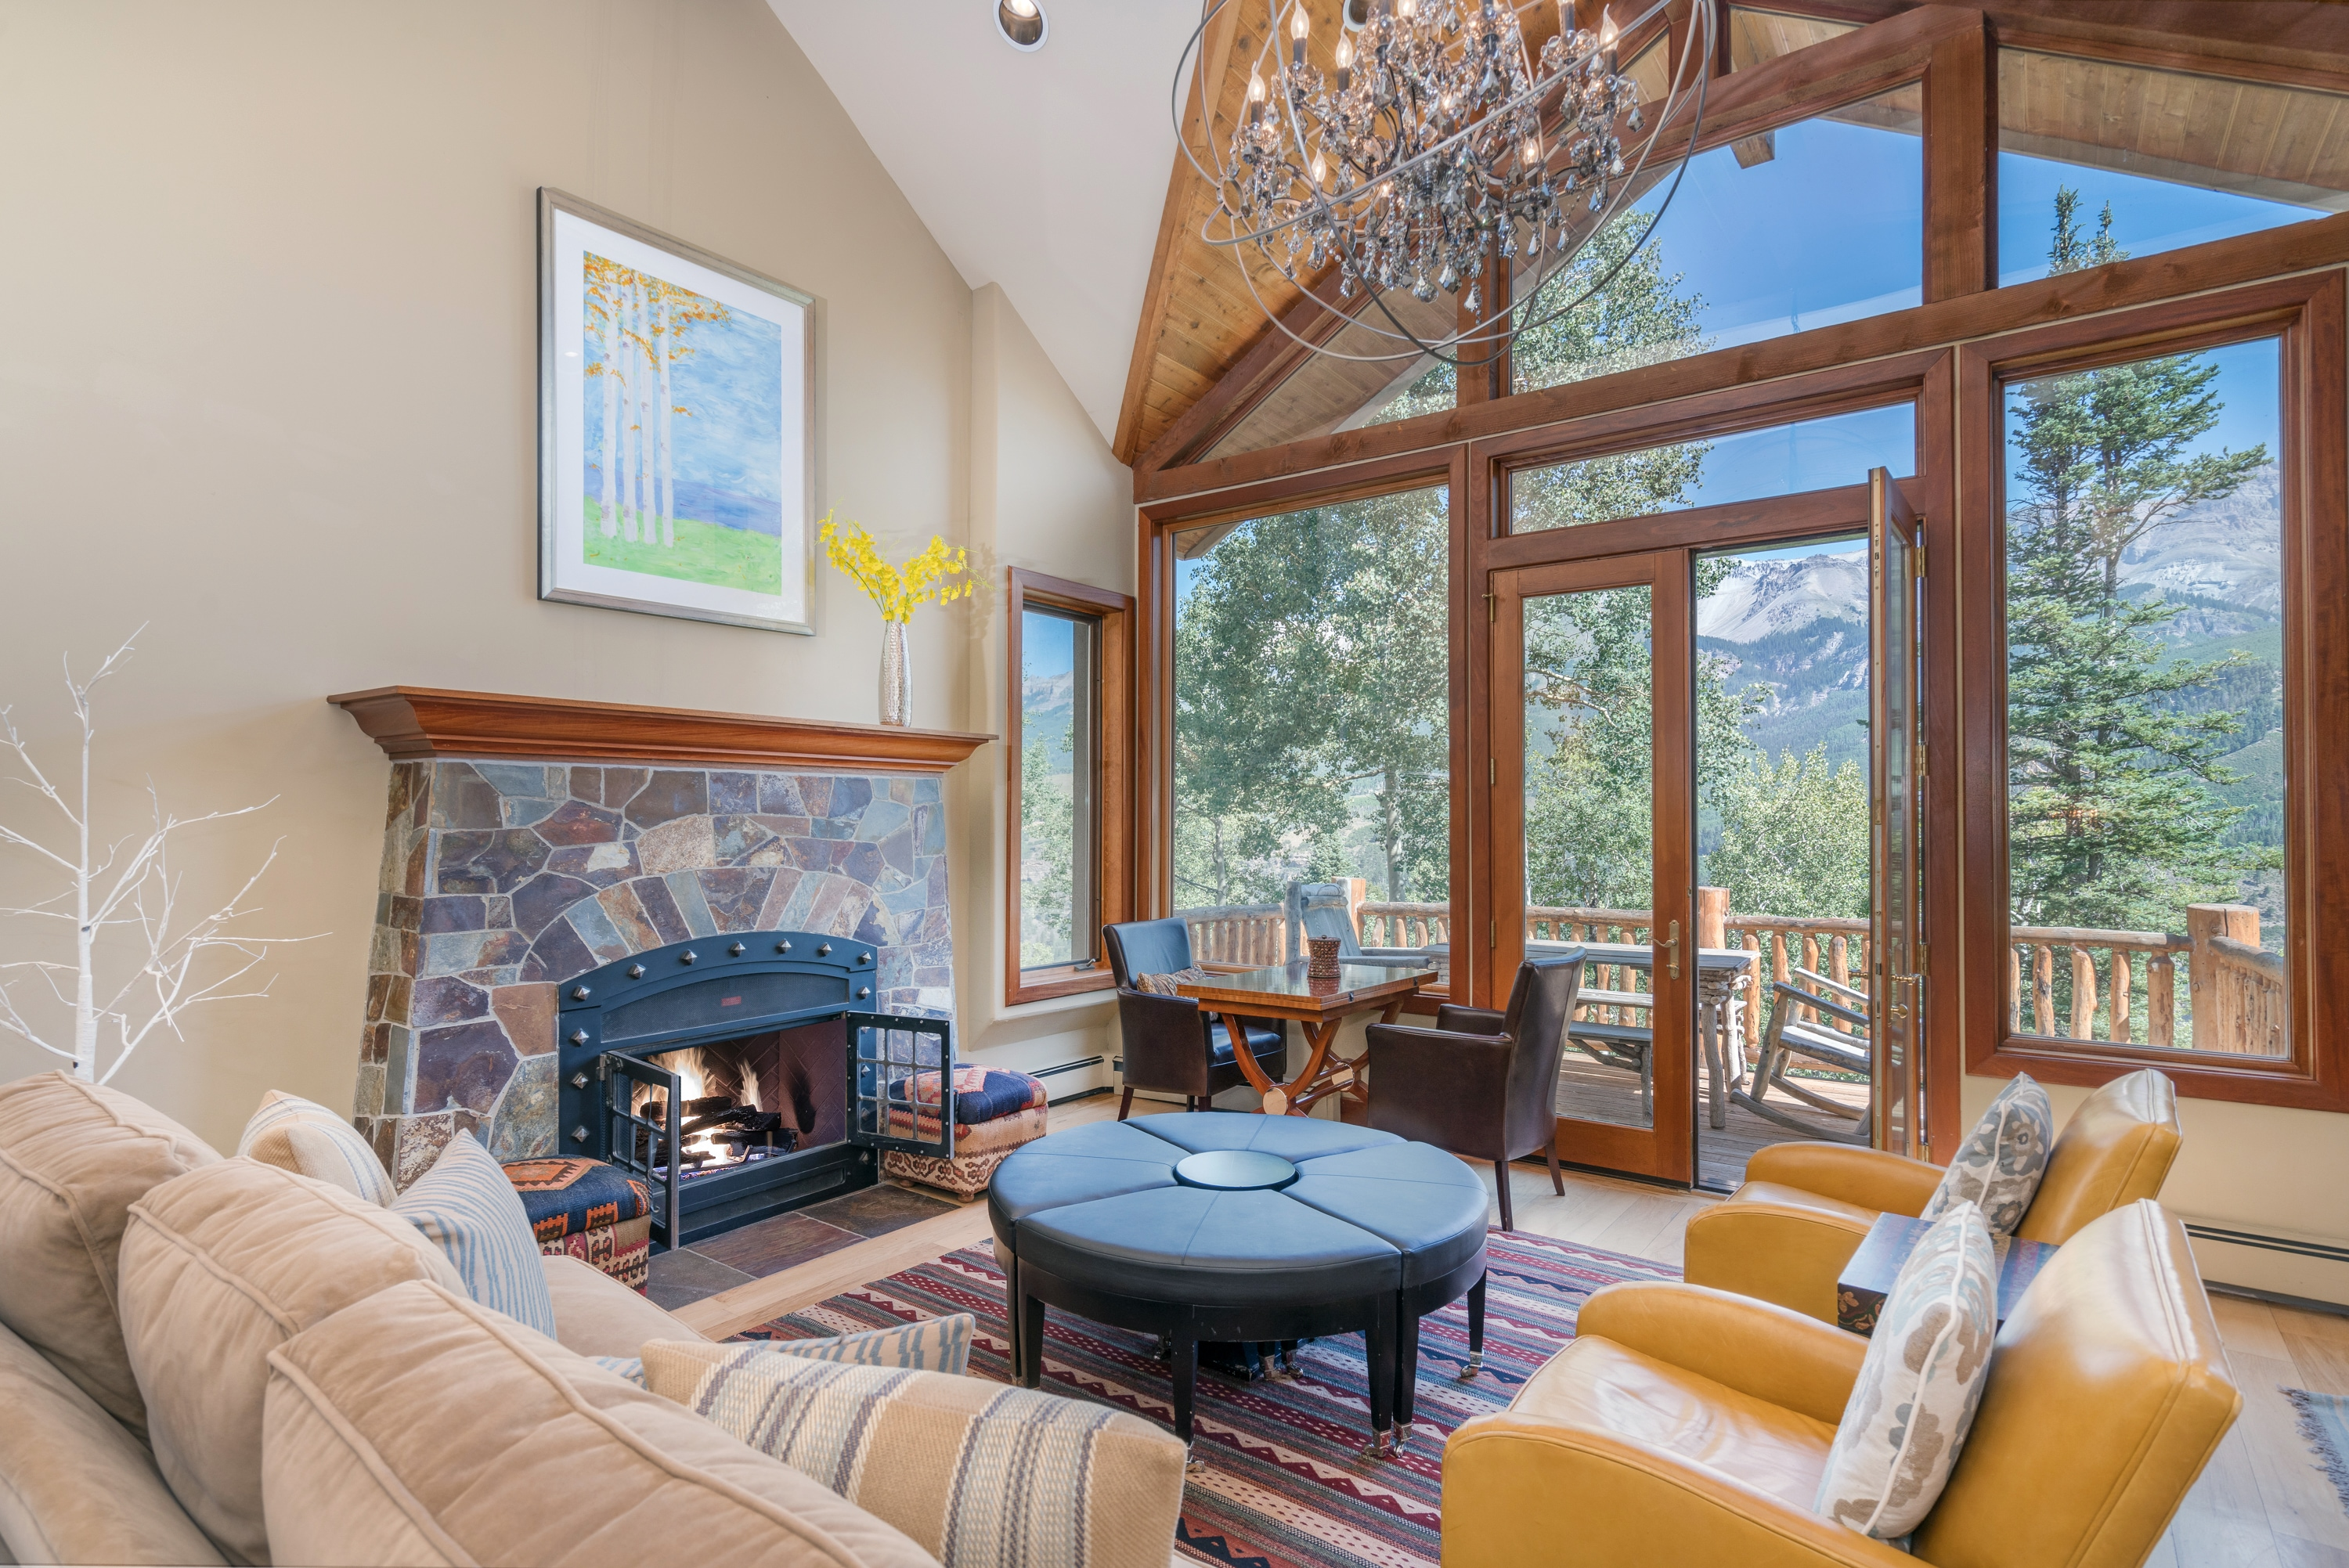 Secluded Mountain Home with 2 Ski Passes Included